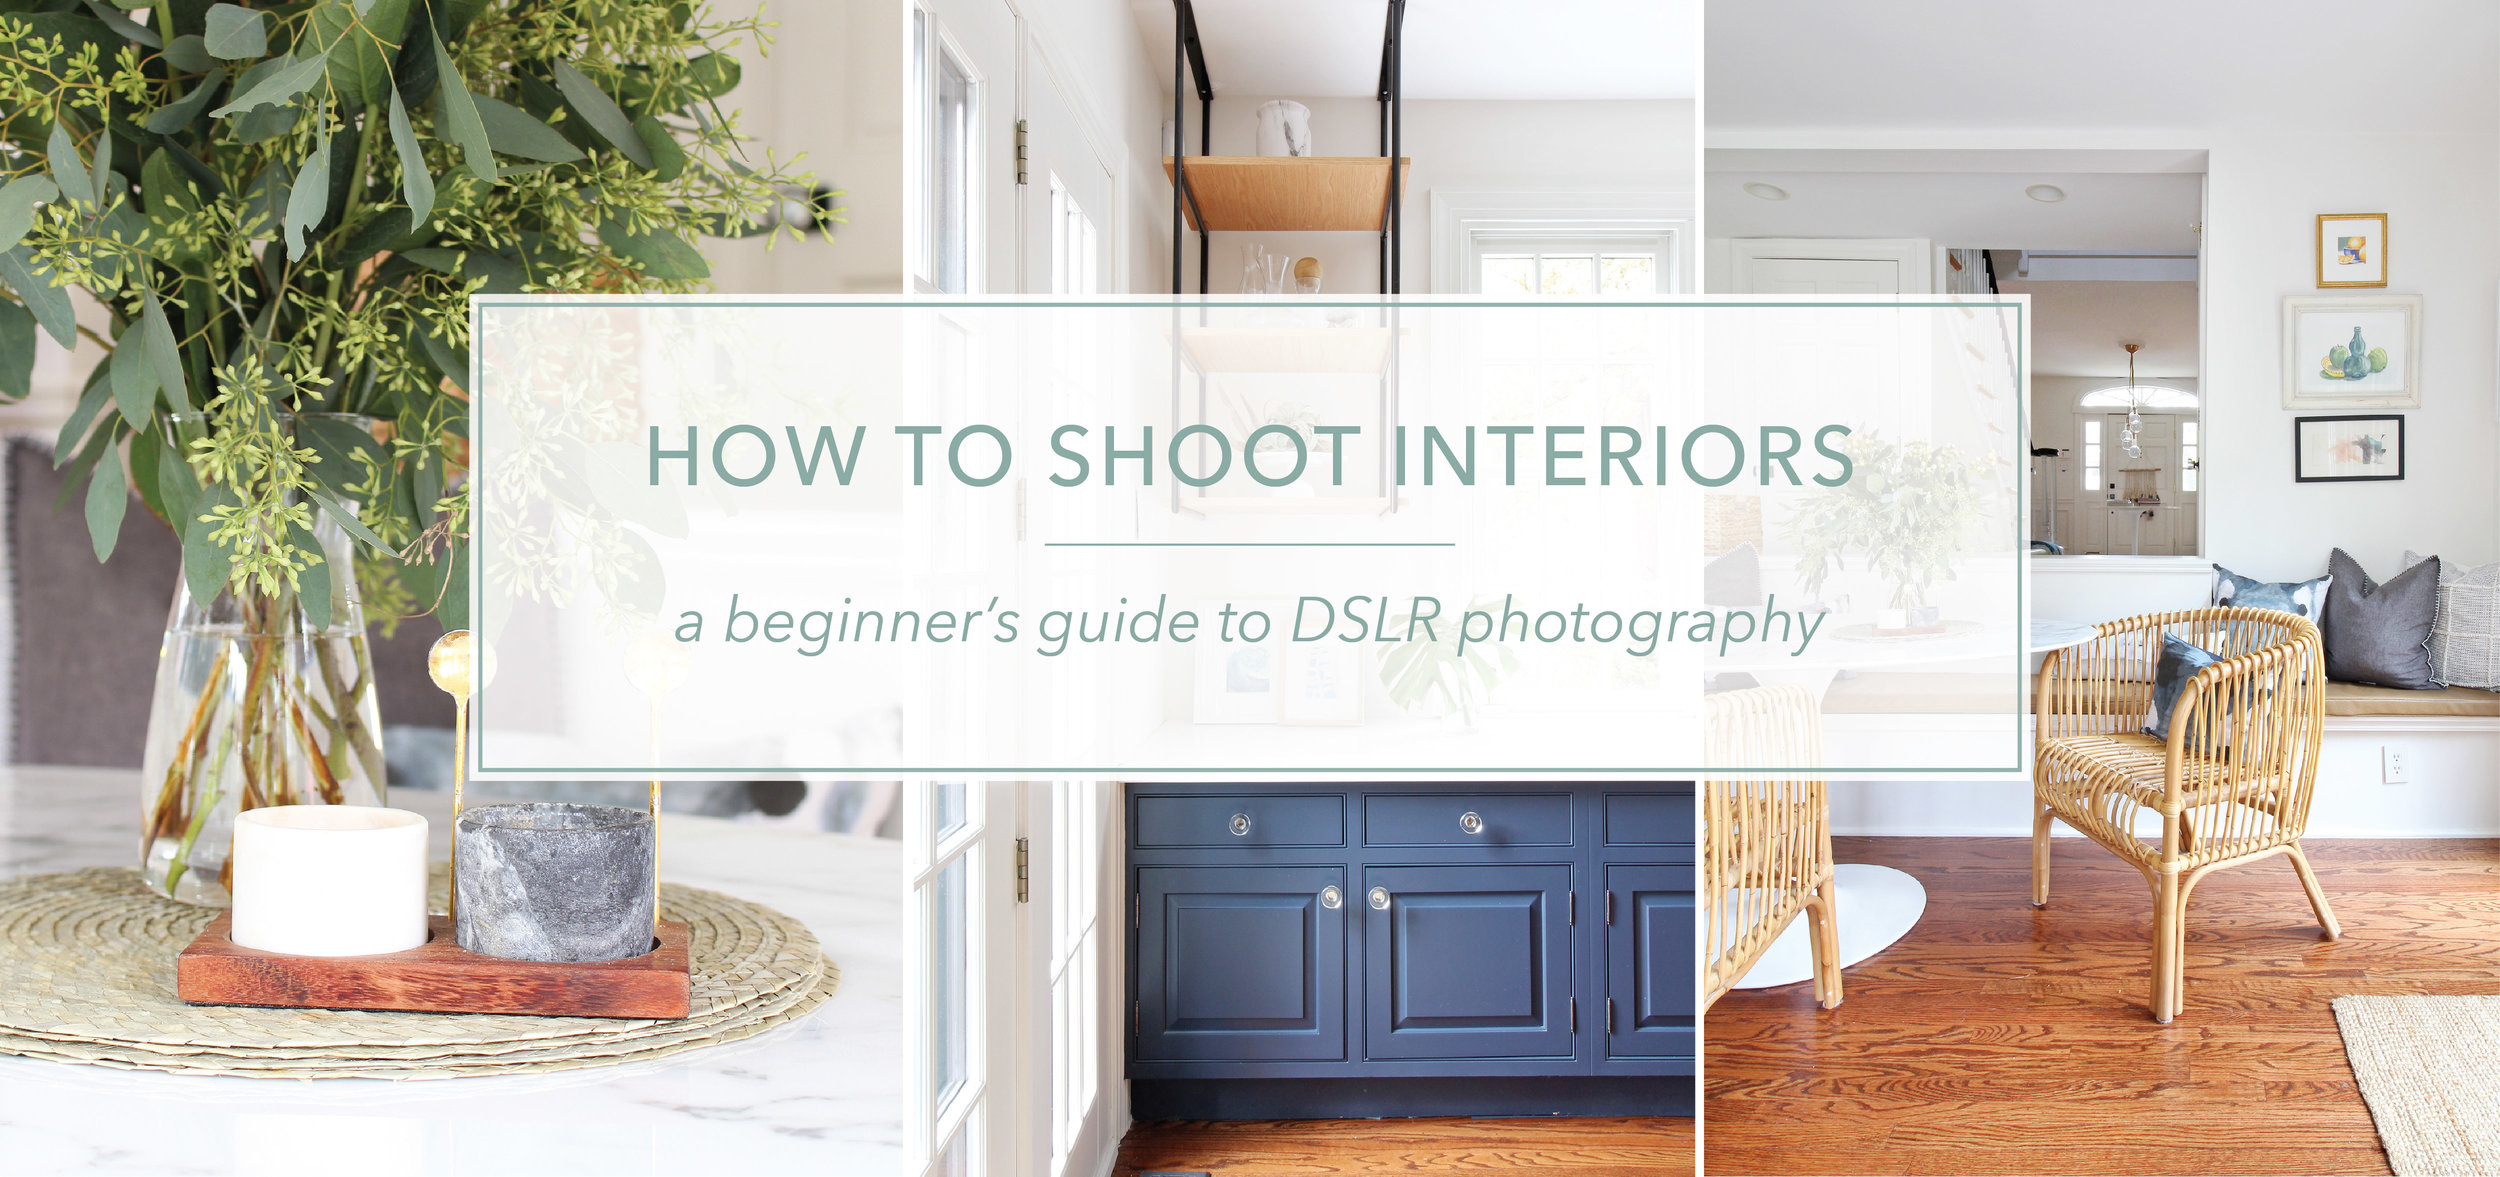 How To Shoot Interiors - A Beginner's Guide to Interior Photography. This online course will teach you how to take beautiful photos with a DSLR camera, shoot in manual, enhance photos in Photoshop, and more!